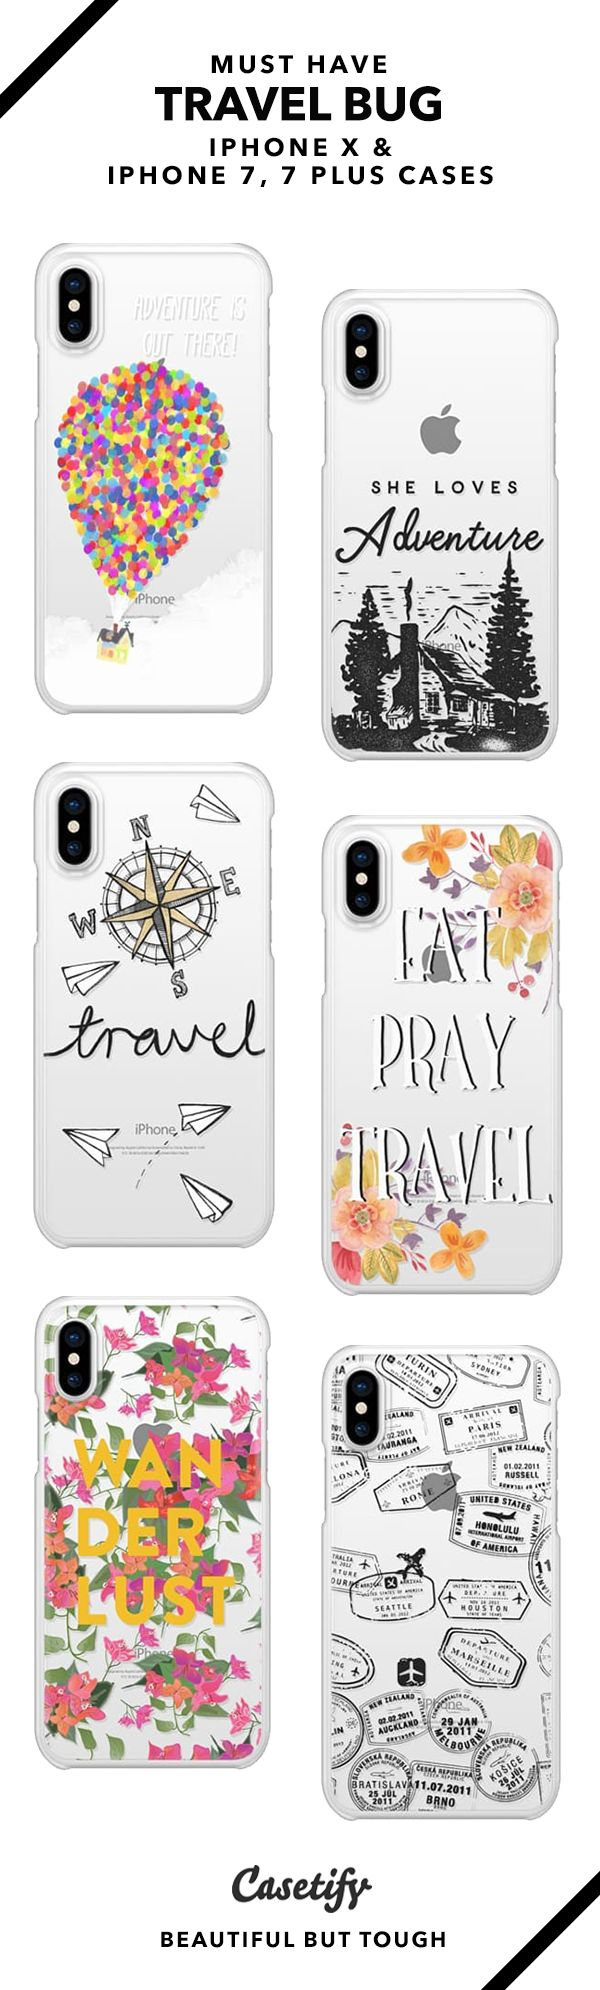 35 Must Have Travel Bug iPhone X, iPhone 7 Cases and iPhone 7 Plus Cases.  Shop them here ☝️☝️☝️ BEAUTIFUL BUT TOUGH ✨ - travel, wanderlust, map, floral